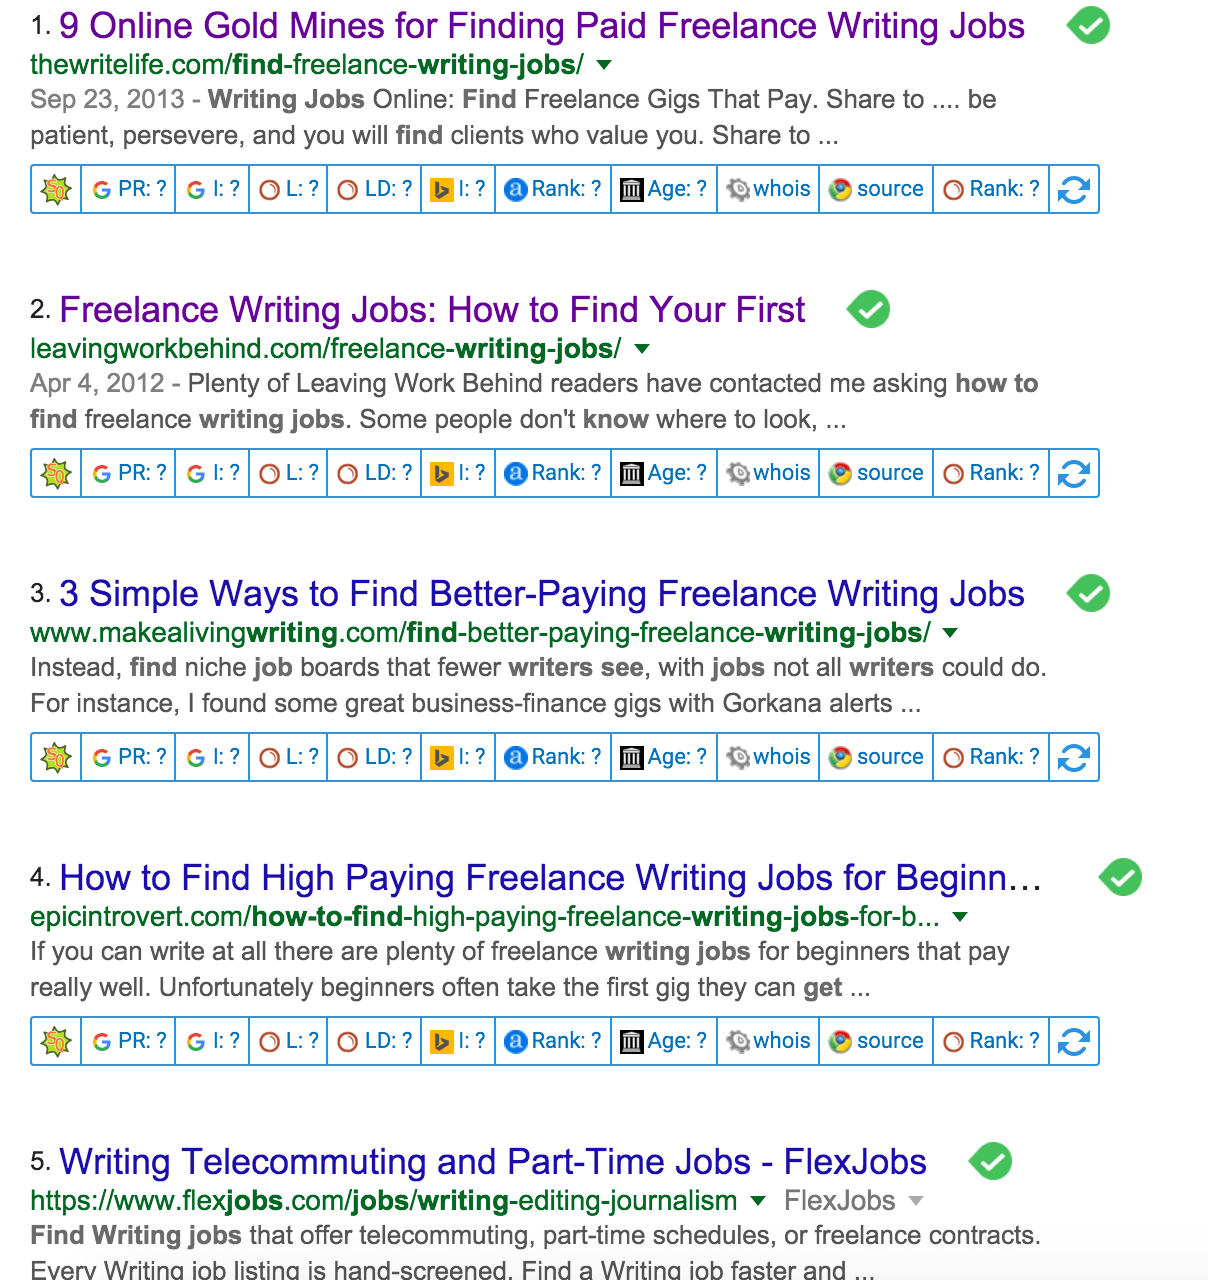 is paid online writing jobs legit i tend to think it s not your finding a job